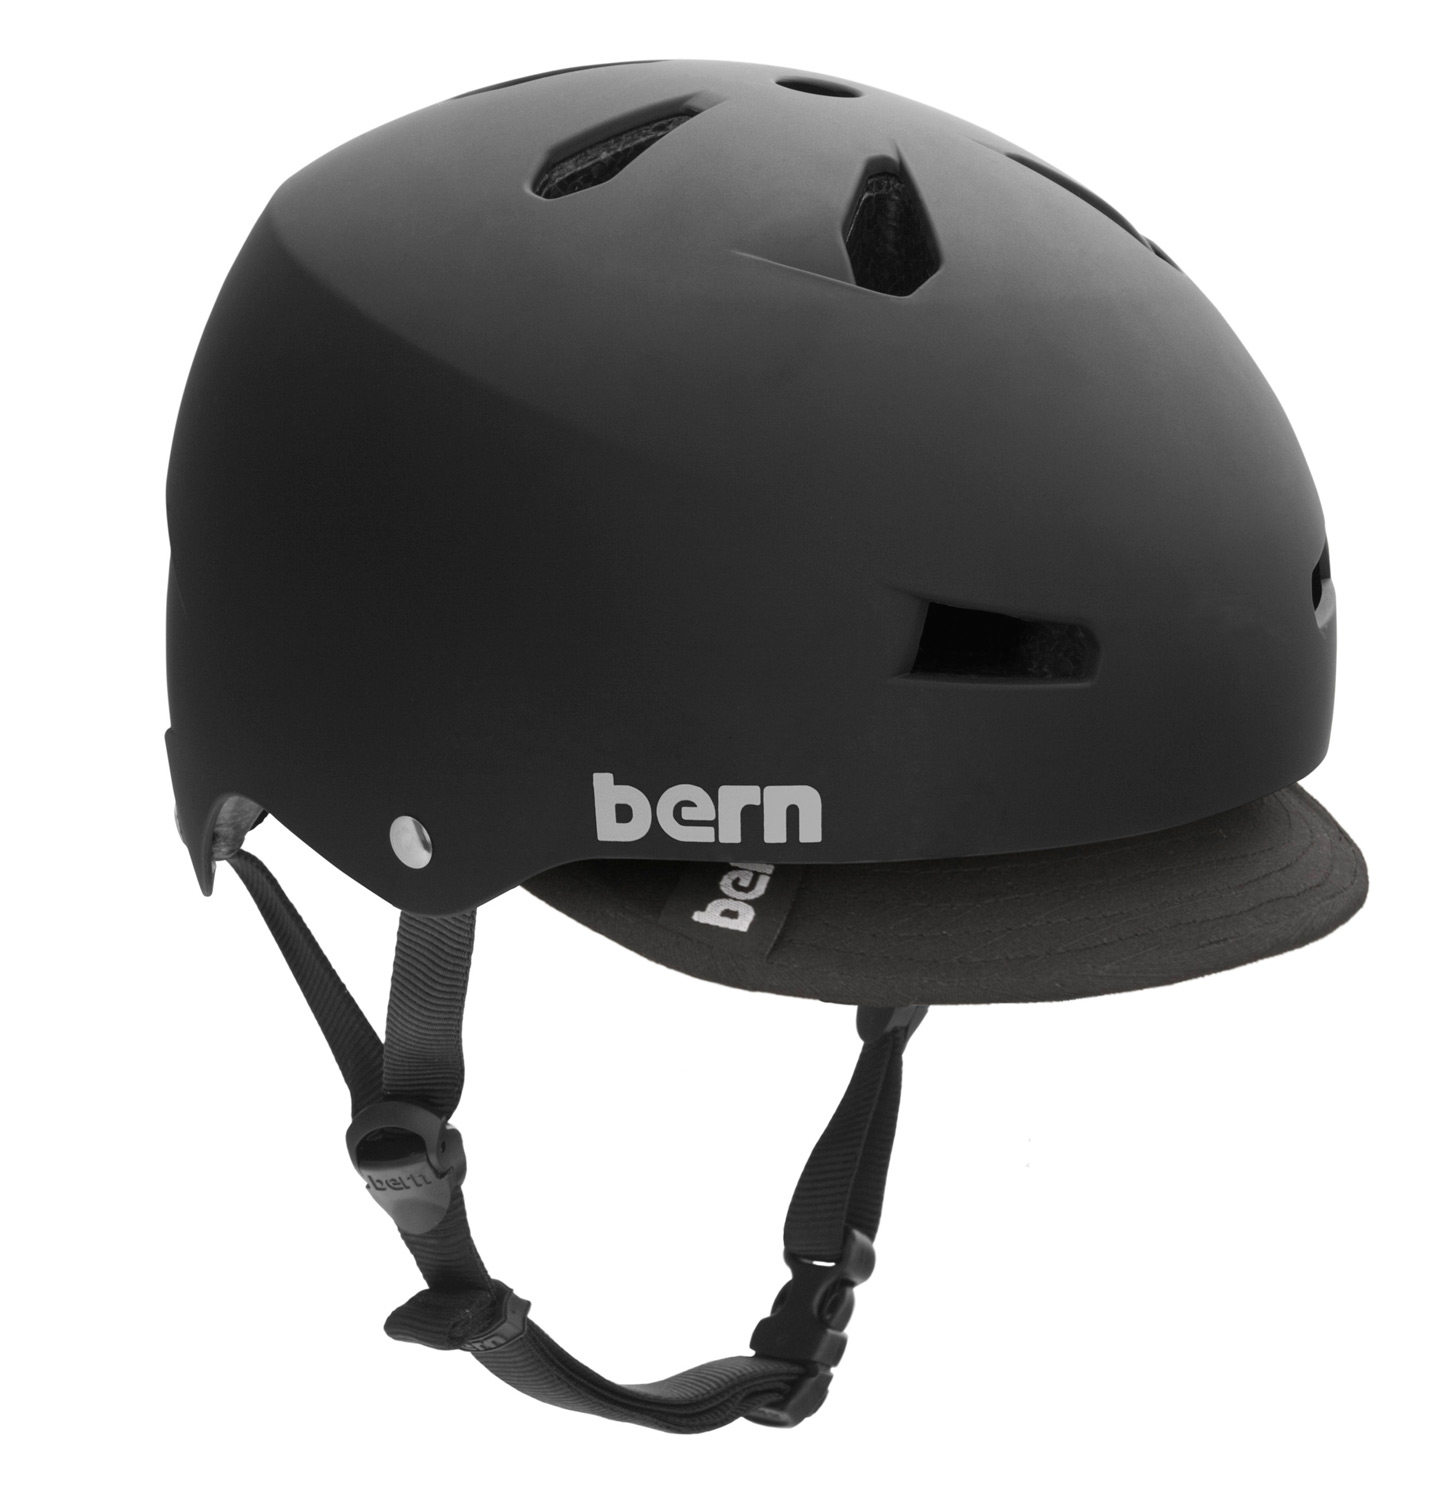 Ski The Macon bike helmet takes skate style to your everday commute. Core clean lines and durable construction team up with a removable visor for protection against the sun and inclement weather. Bern's All Season liner system allows you to use the Macon on your snowboard, skis or bike. EPS hard foam meets ASTM F 2040 and EN 1077B standards for snow and ski, CPSC and EN 1078 standards for bike and skate. - $49.95